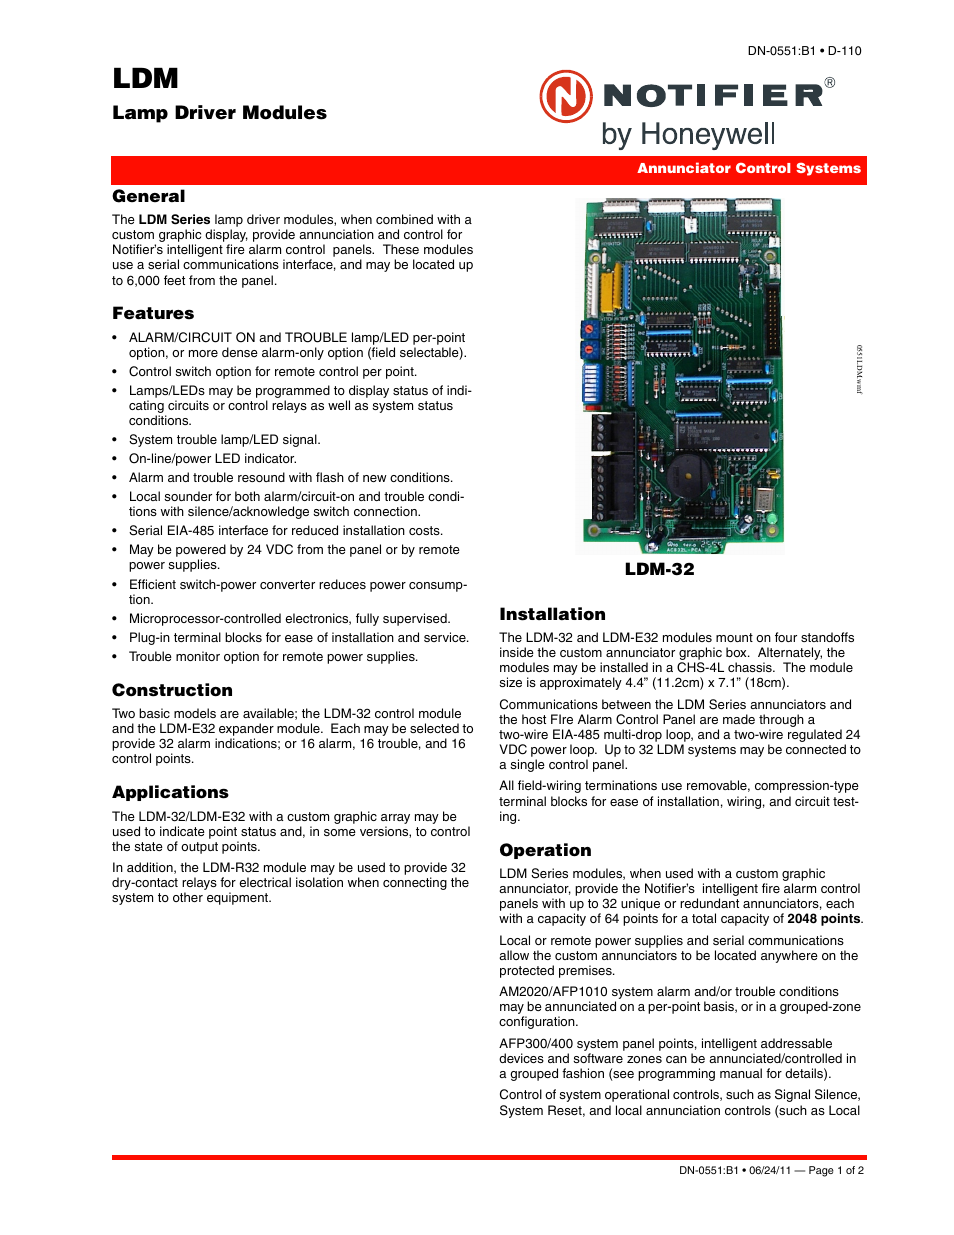 Notifier Ldm User Manual